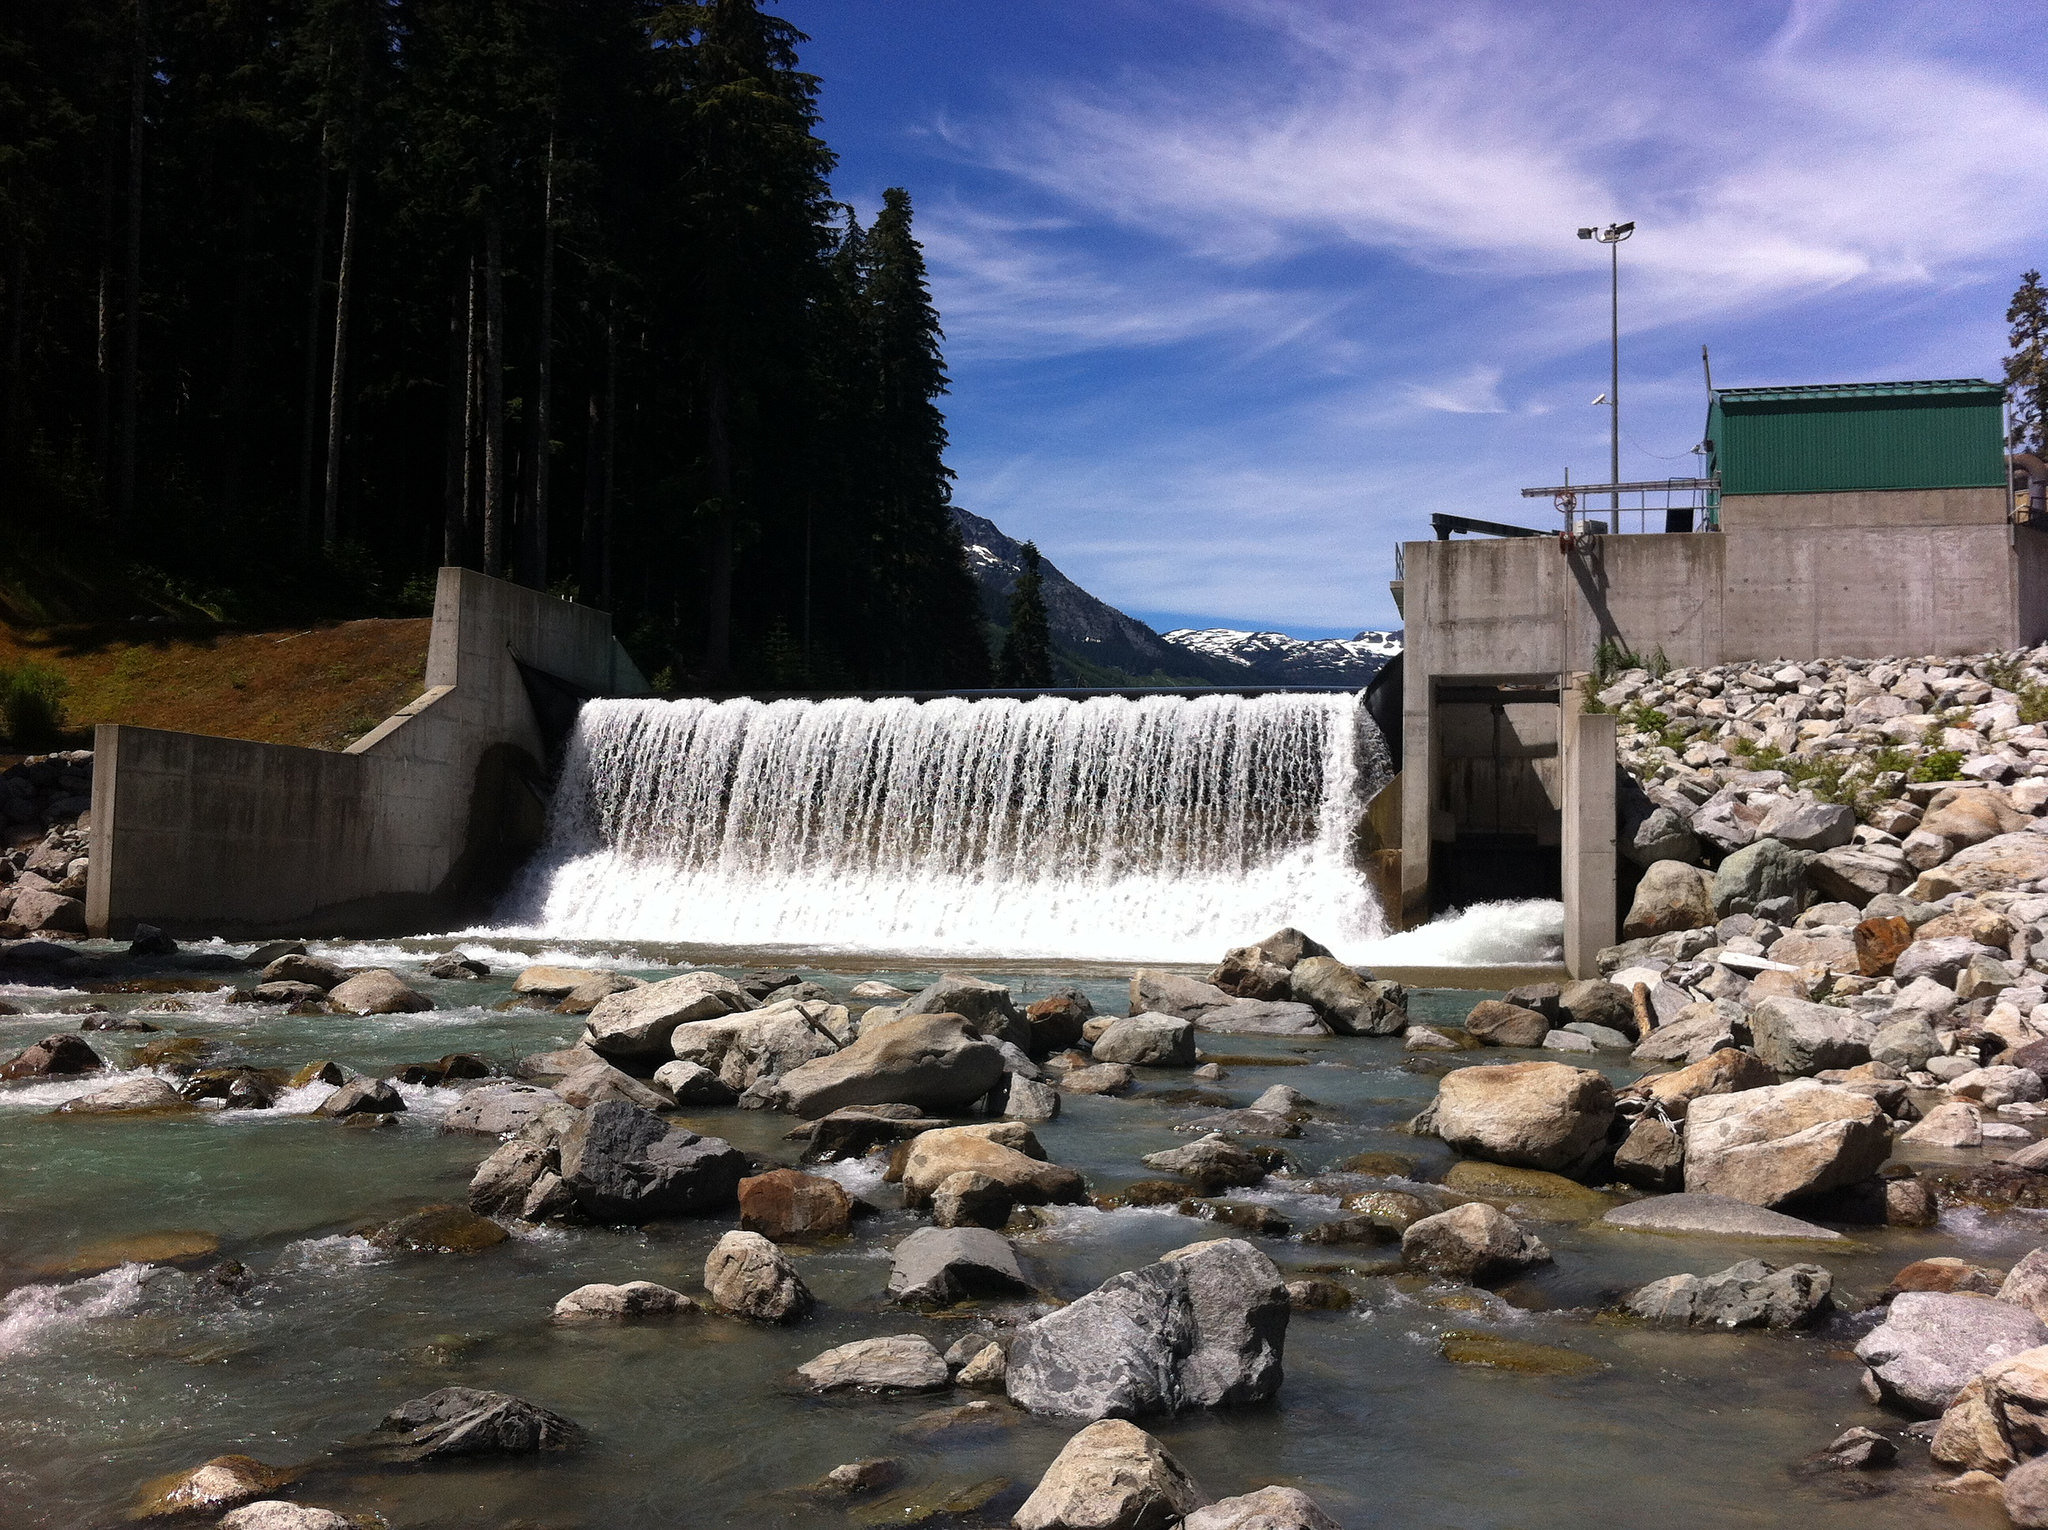 Small hydroelectric dams increase globally with little research, regulations